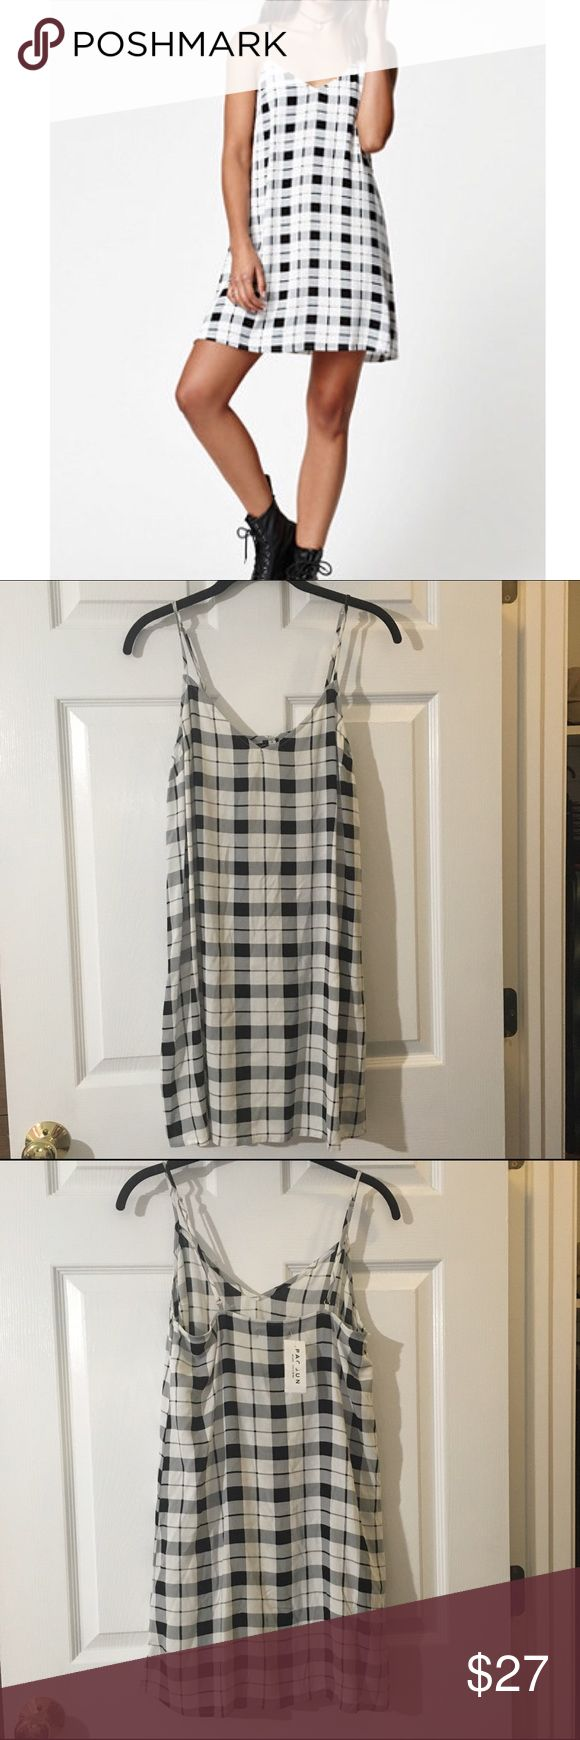 Selling this ✨NWT✨ Kendall and Kylie Checkered Dress on Poshmark! My username is: lceee. #shopmycloset #poshmark #fashion #shopping #style #forsale #PacSun #Dresses & Skirts